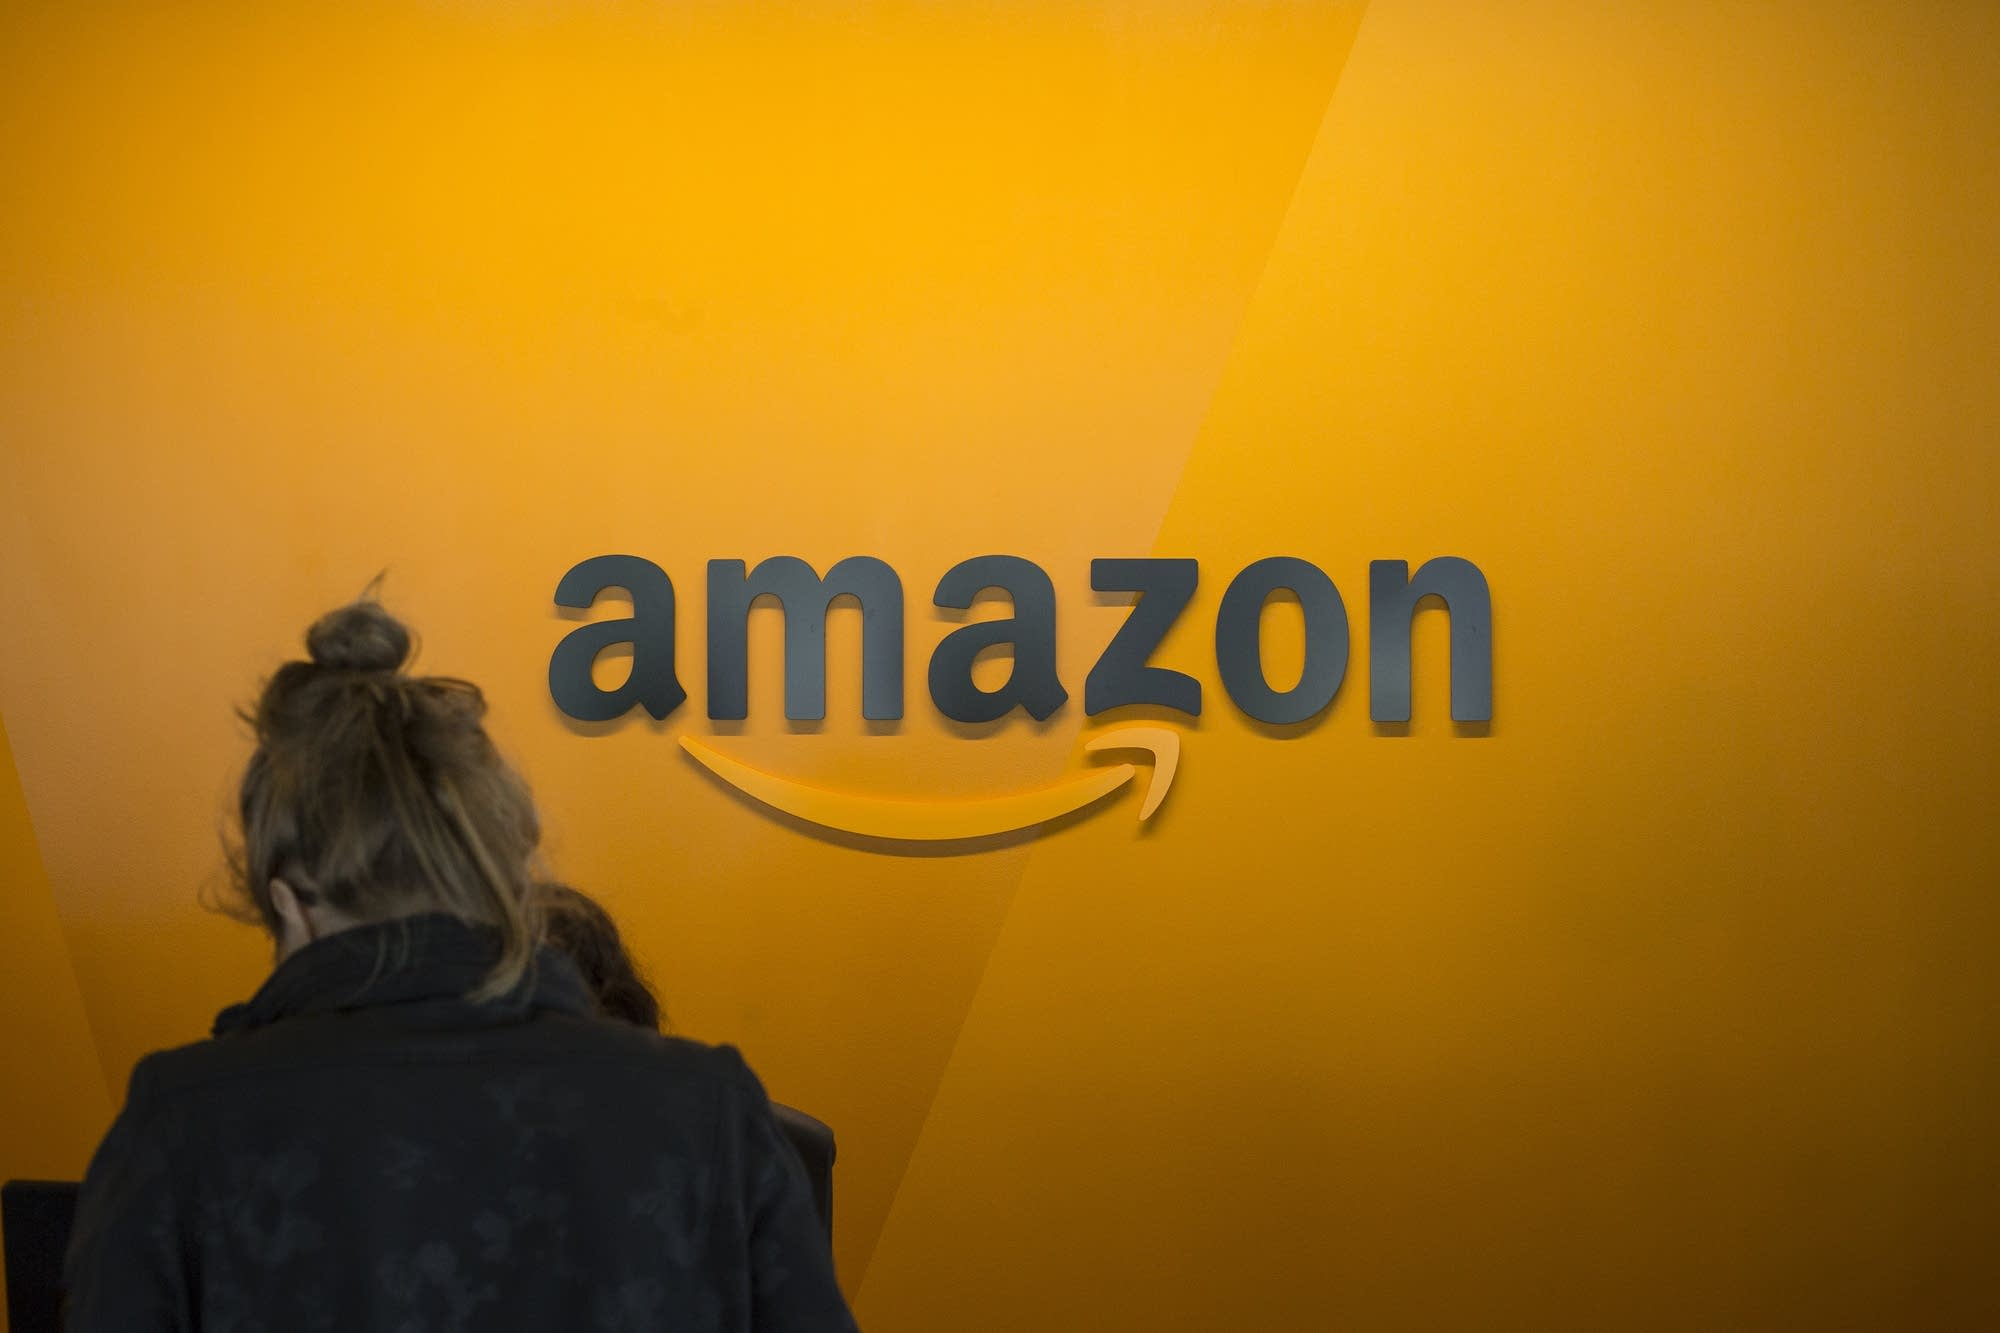 Amazon expanding Boston tech hub, hiring on 2000 workers